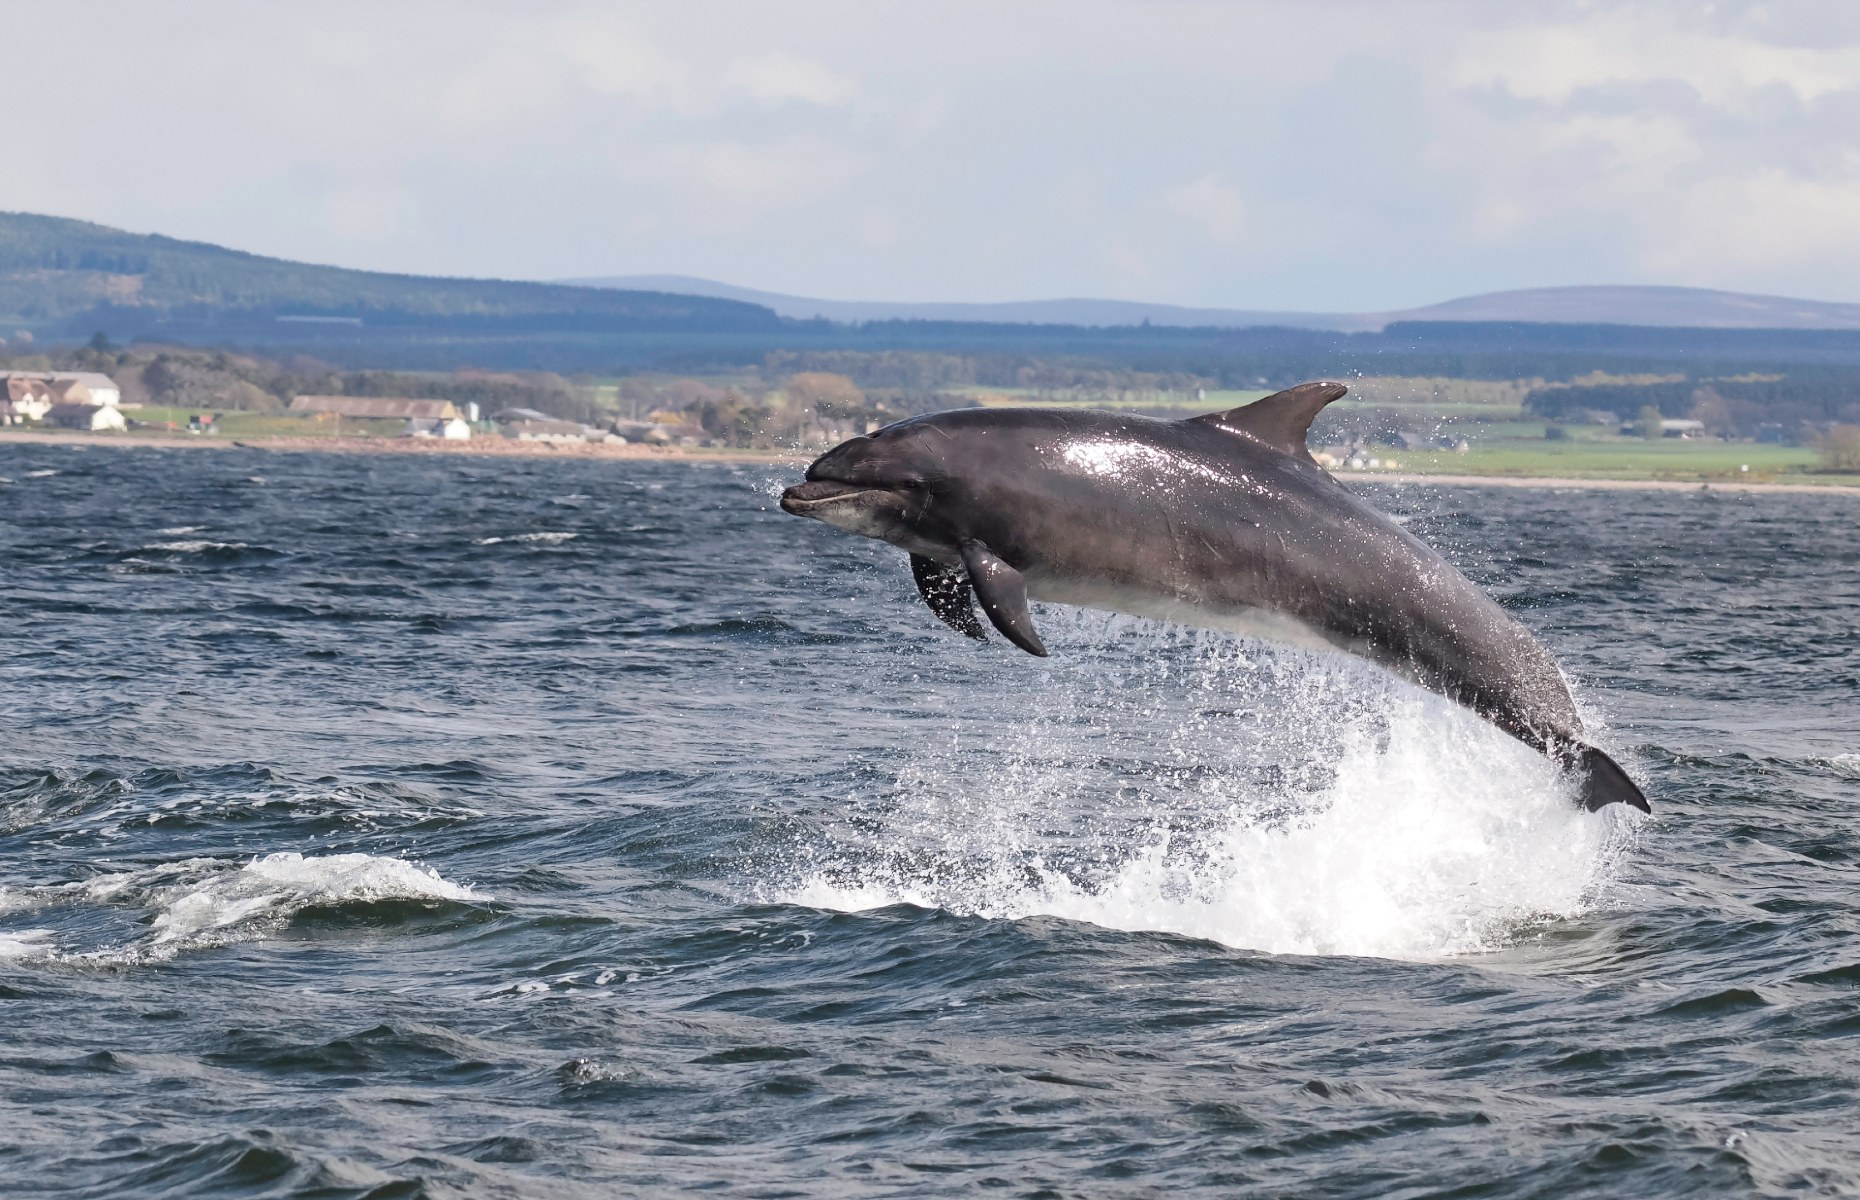 A dolphin in Mull (Image: Chanonry/Shutterstock)